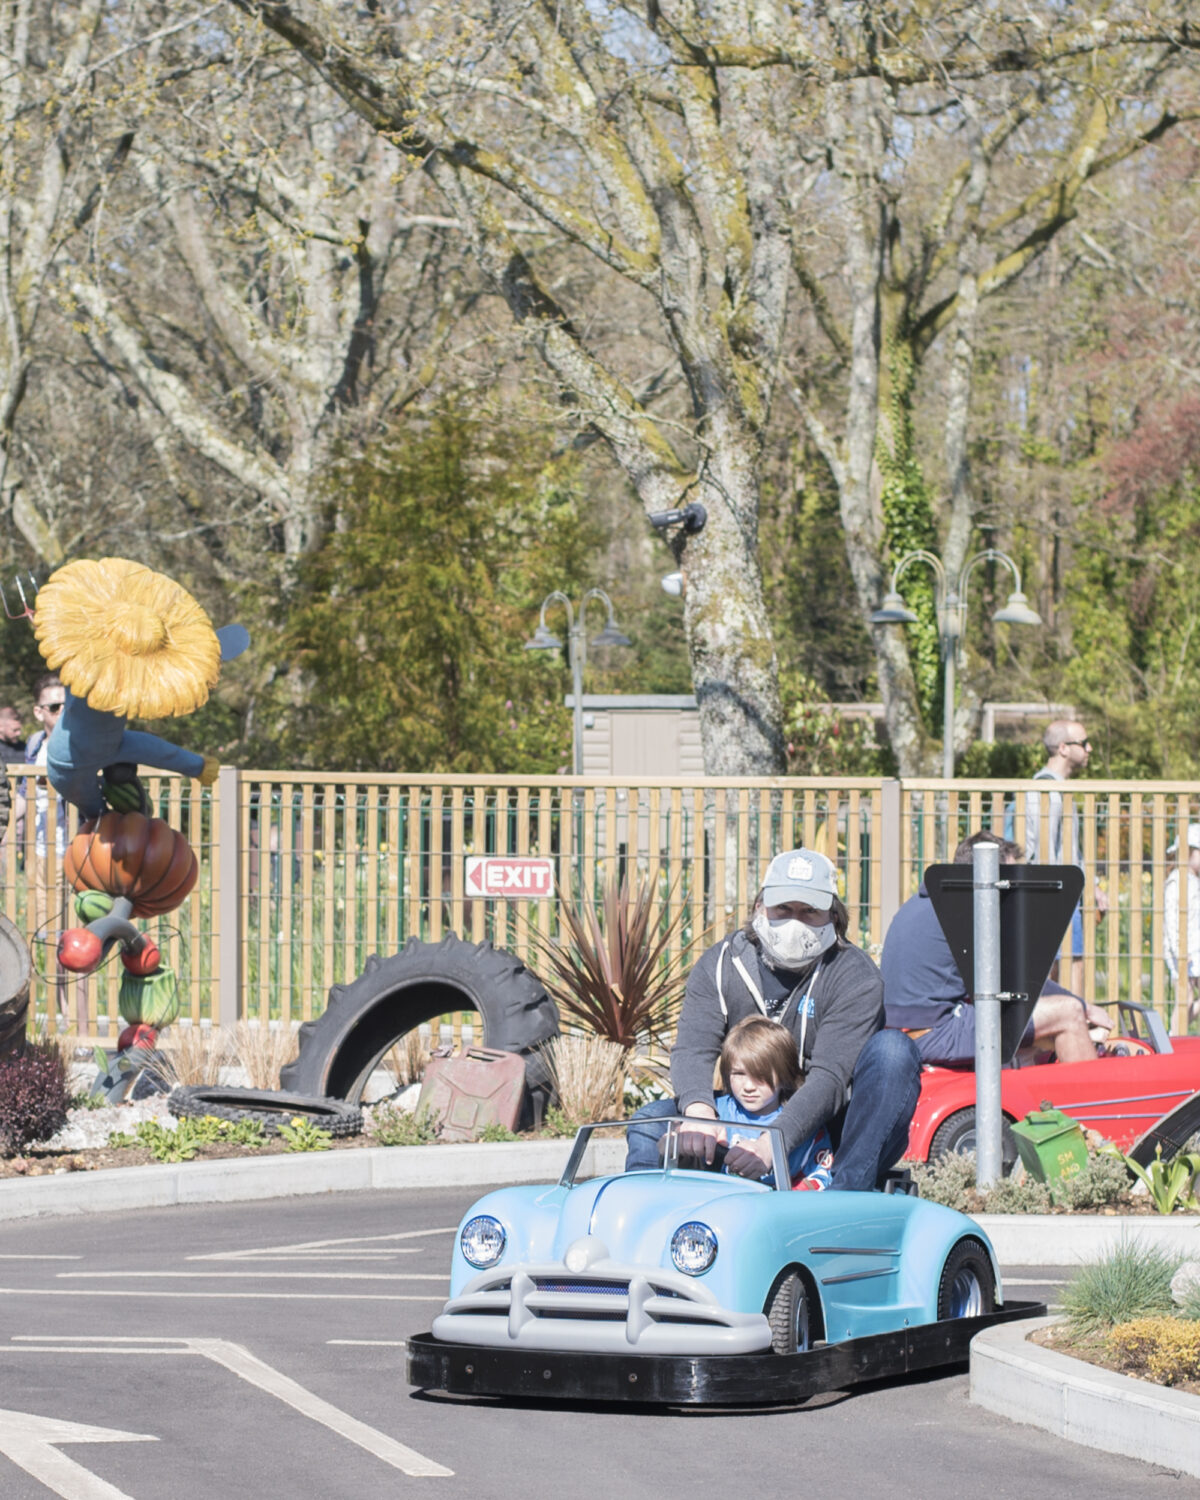 Image shows a parent and child driving a blue 1950s car in the Al's Automobile Academy attraction at Tornado Springs in Paultons Park.